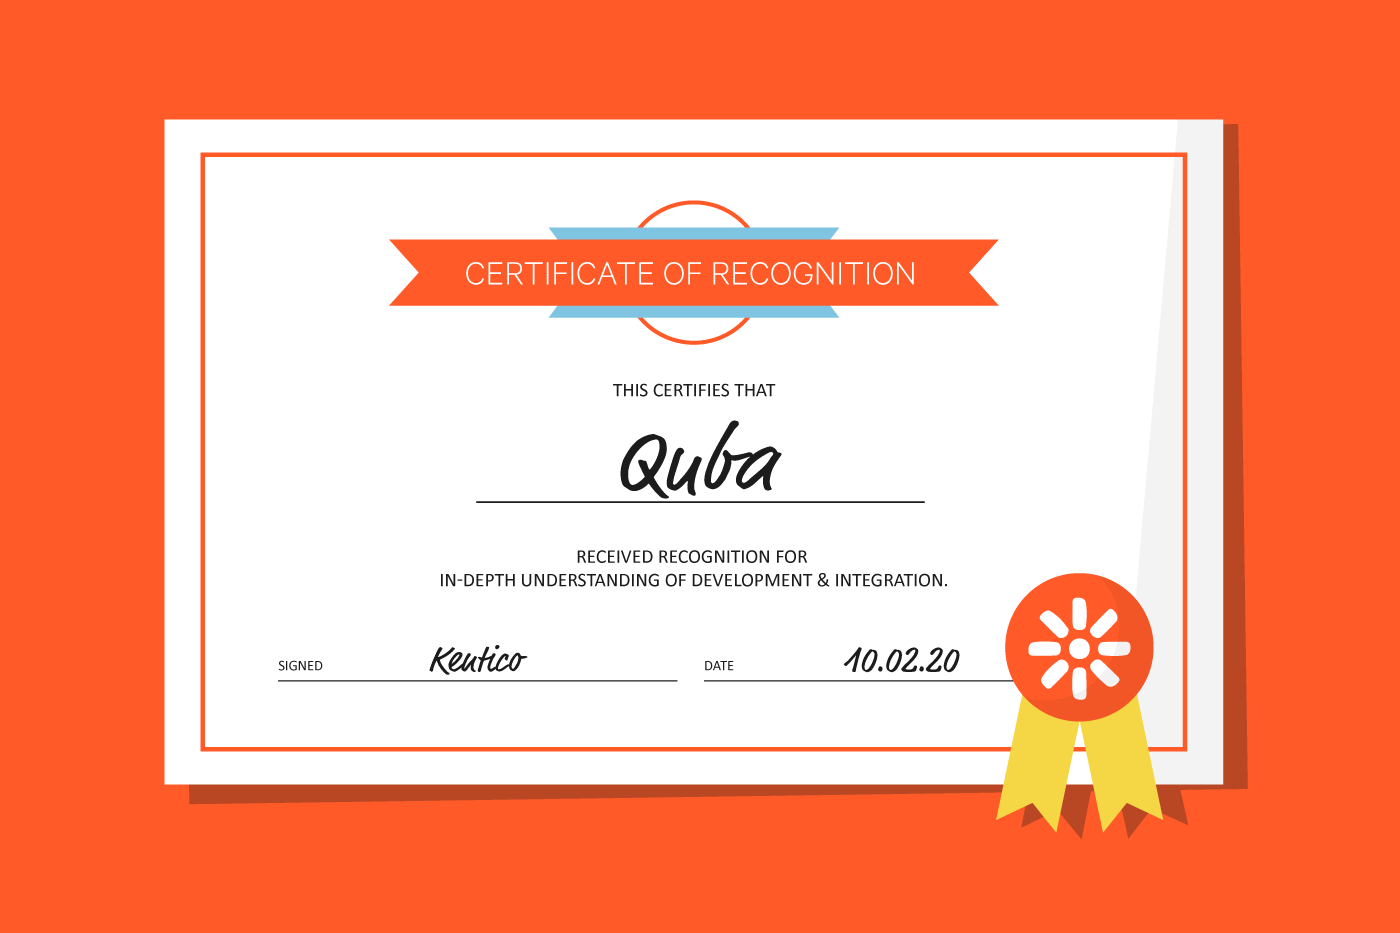 Quba gains two competency awards from Kentico